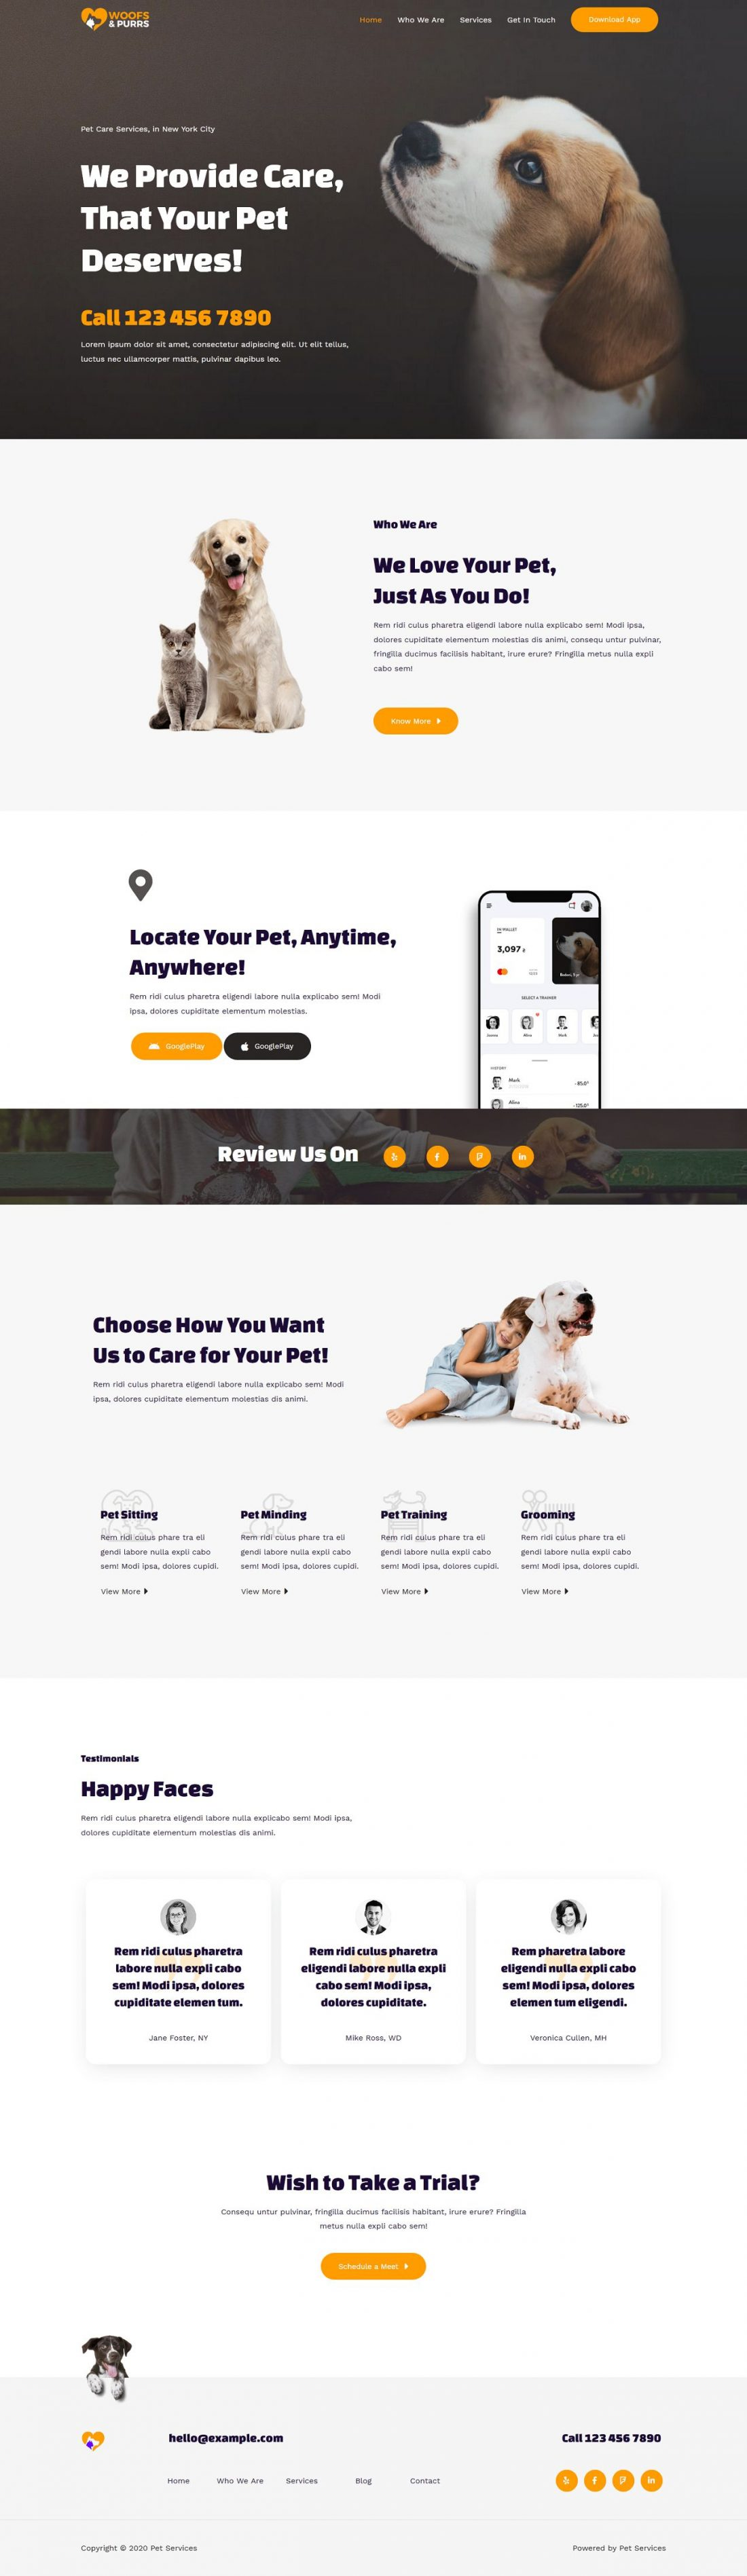 Fagowi.com Website Design Templates For Pet Sitting Services - Home Page Image